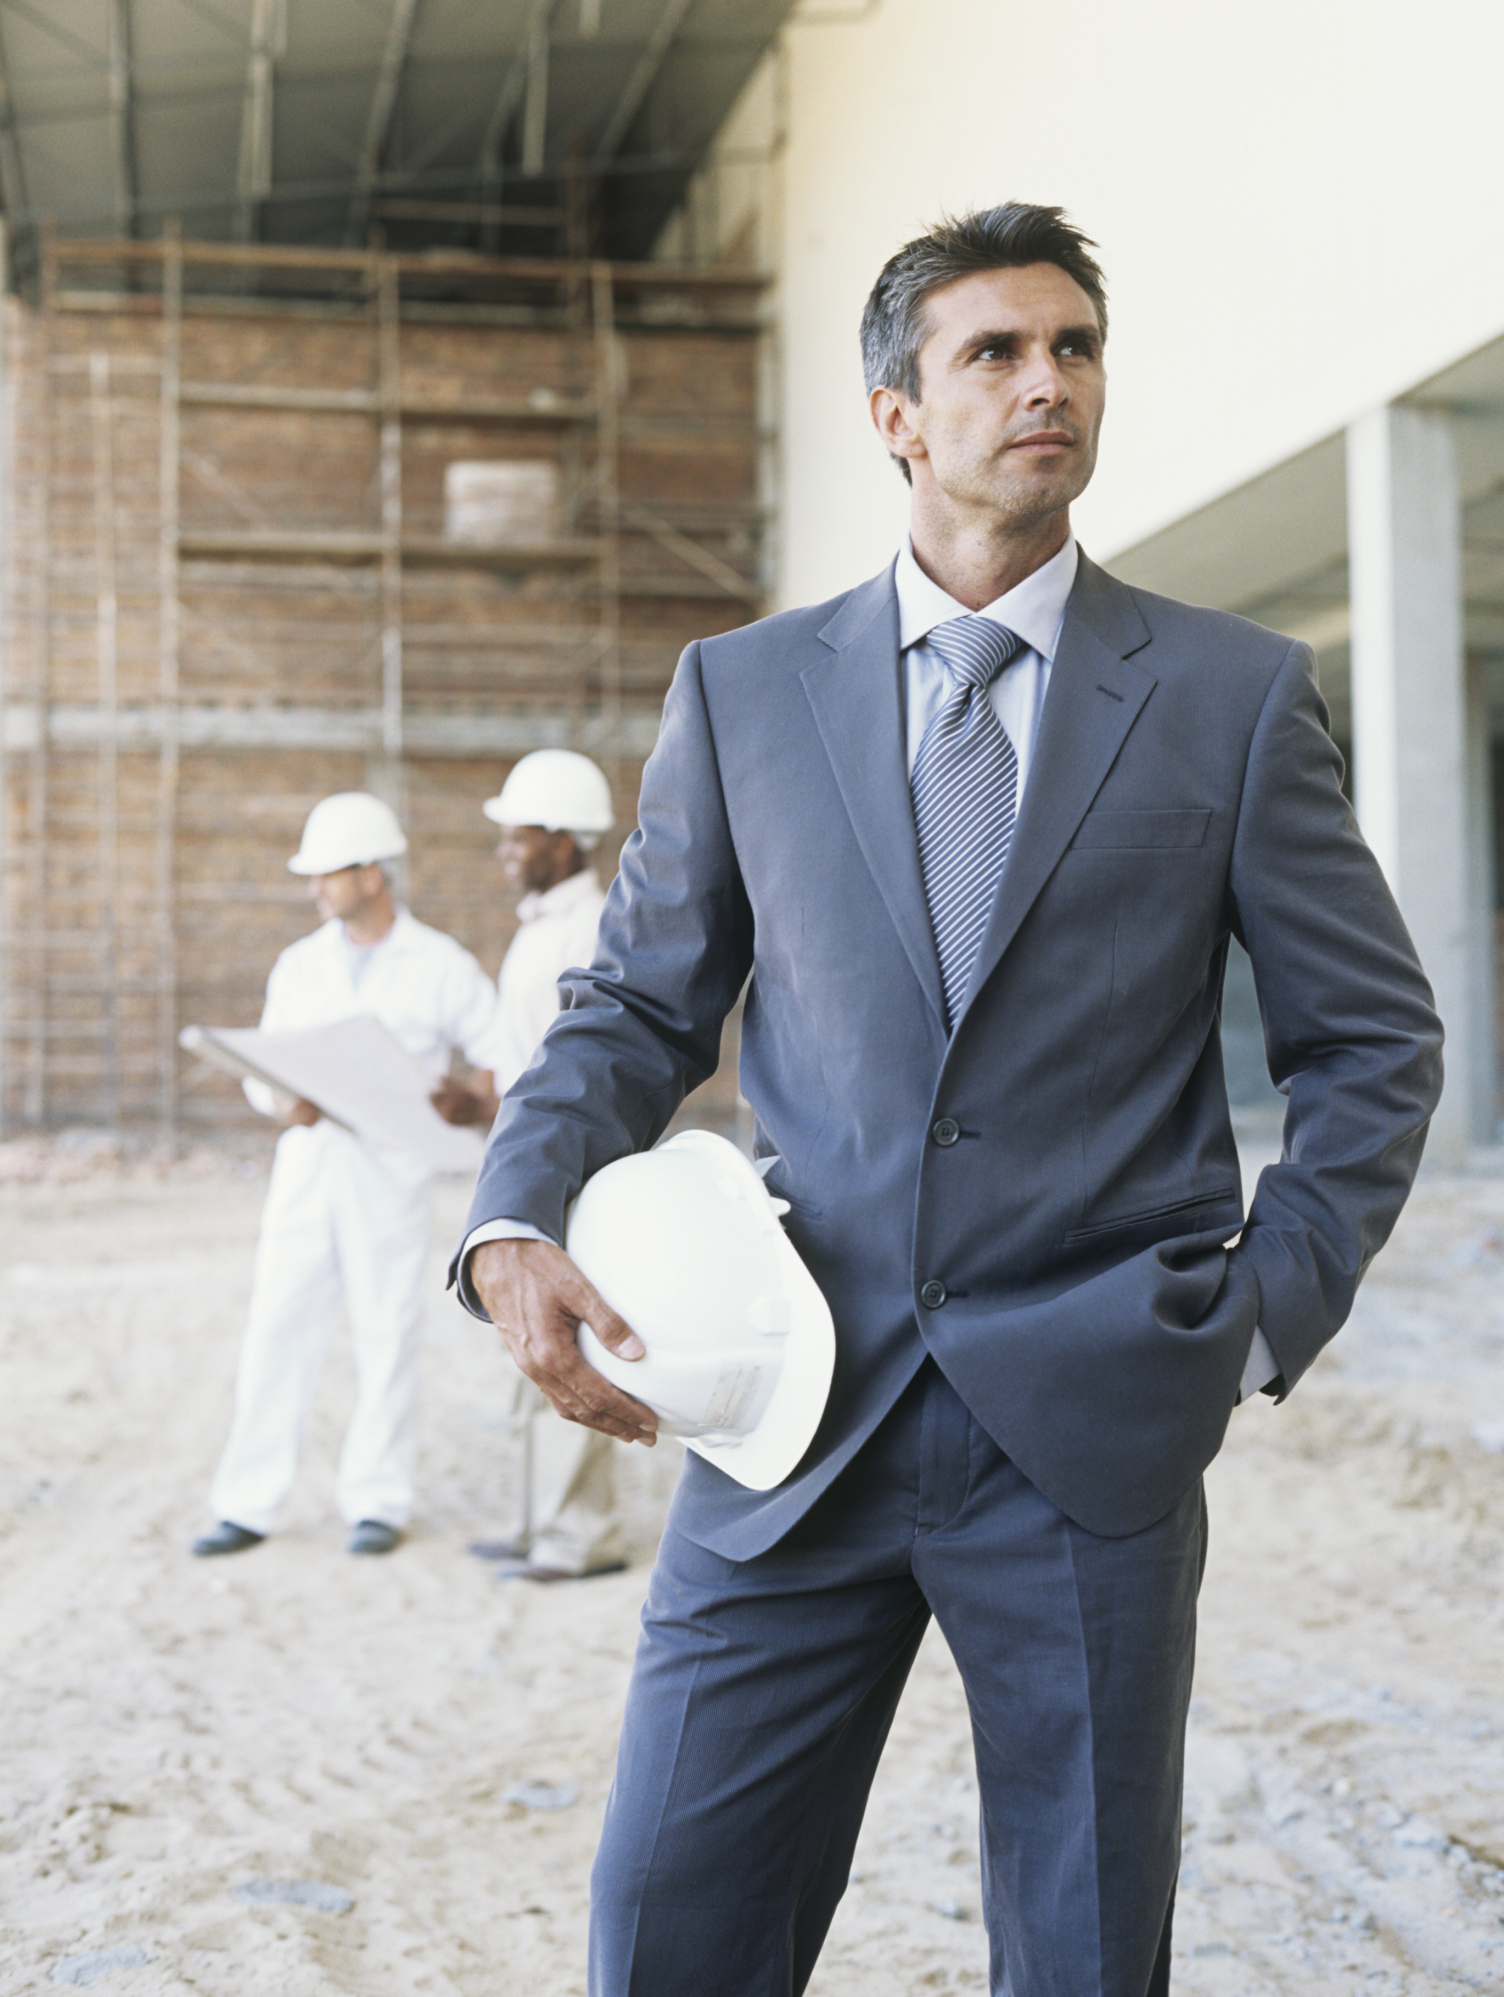 How Much Does a Construction Superintendent Make